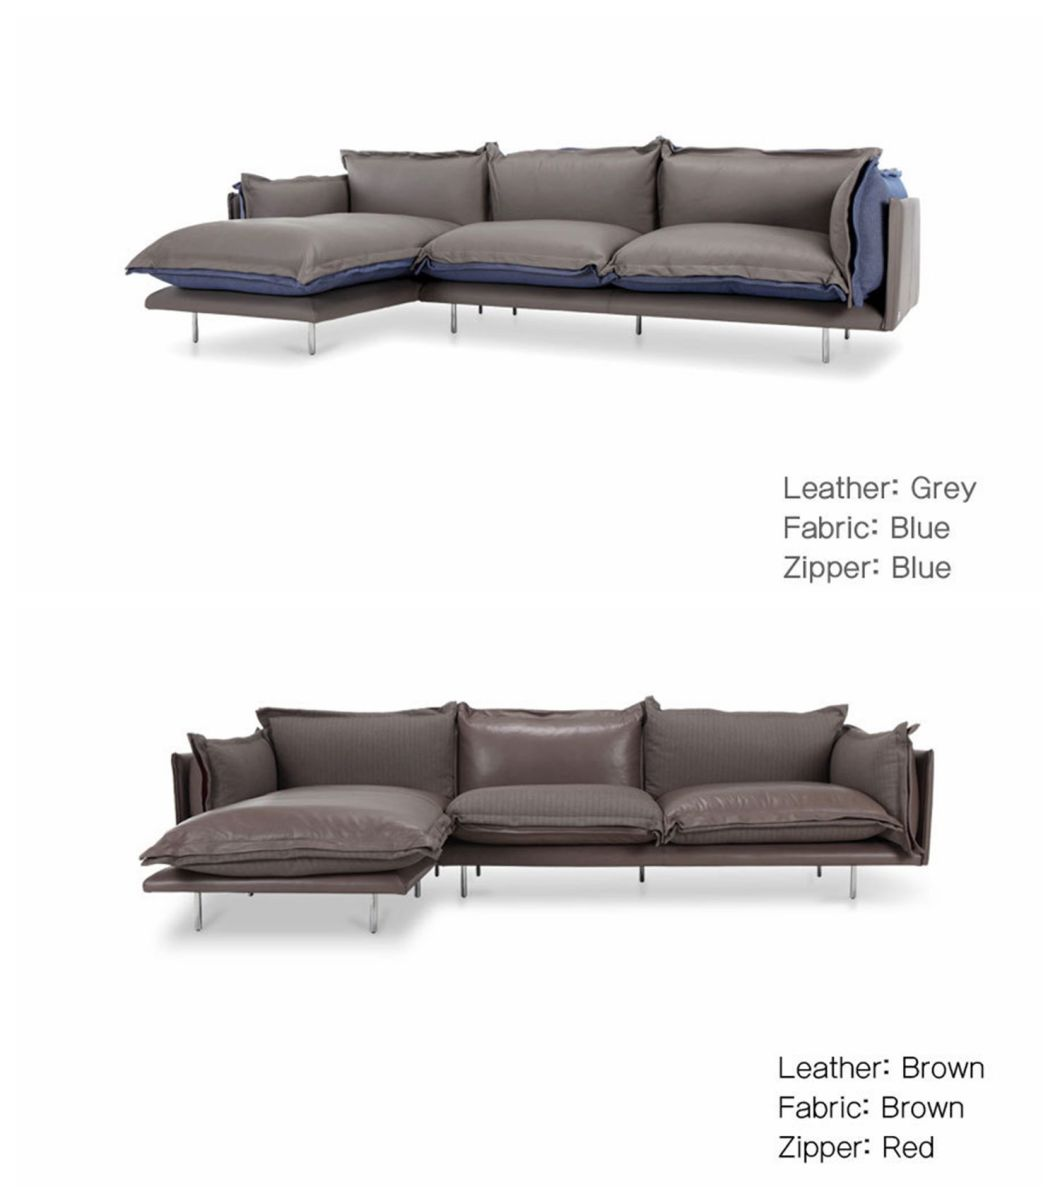 Modern Leather Fabric Sectional Sofa